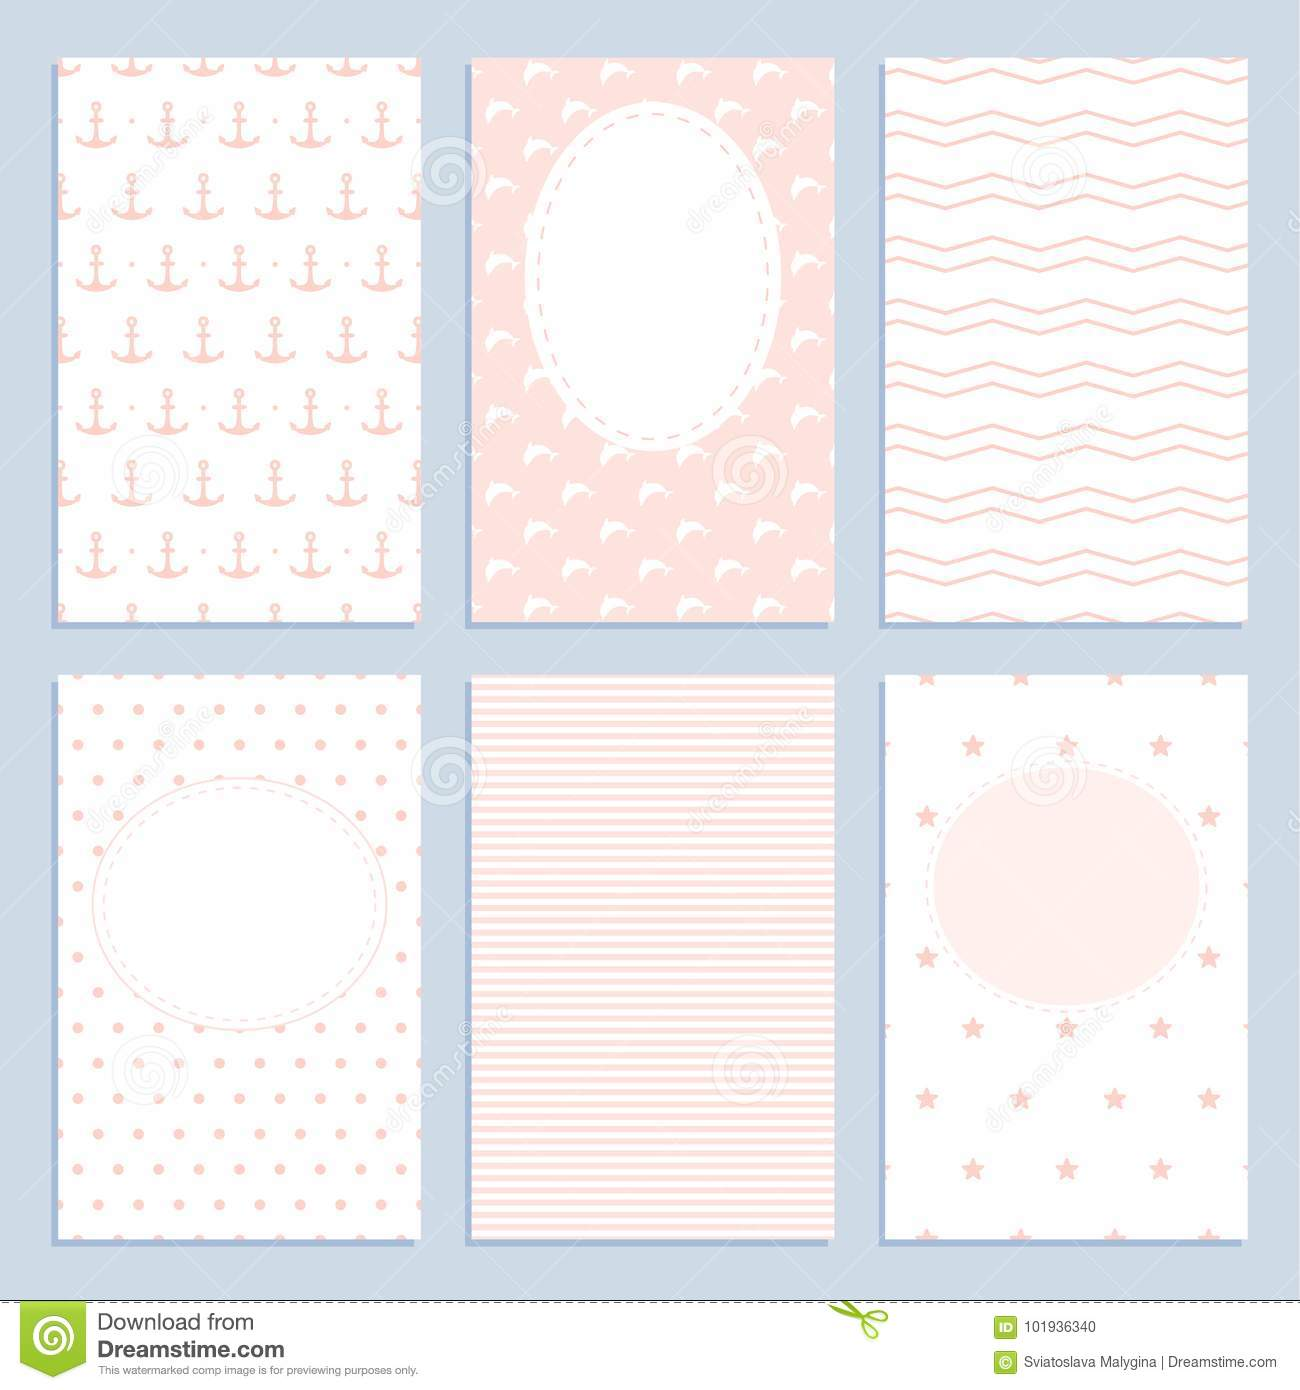 Set of greeting cards in a marine style for girls.